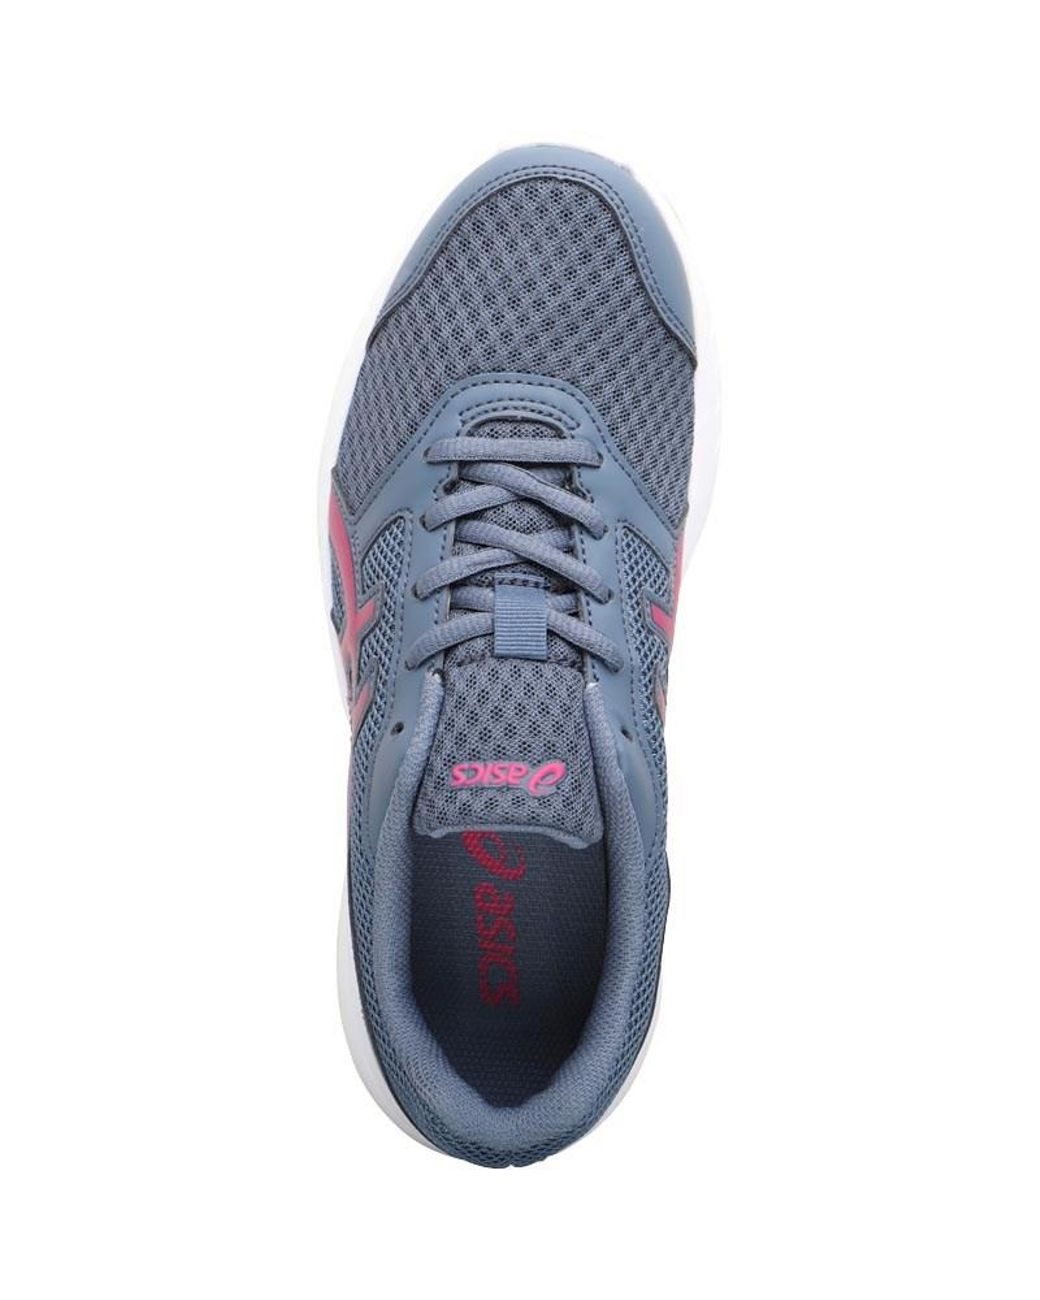 fbe74366aaf51 Asics Stormer 2 Neutral Running Shoes Smoke Blue/fuchsia Purple/indigo -  Lyst